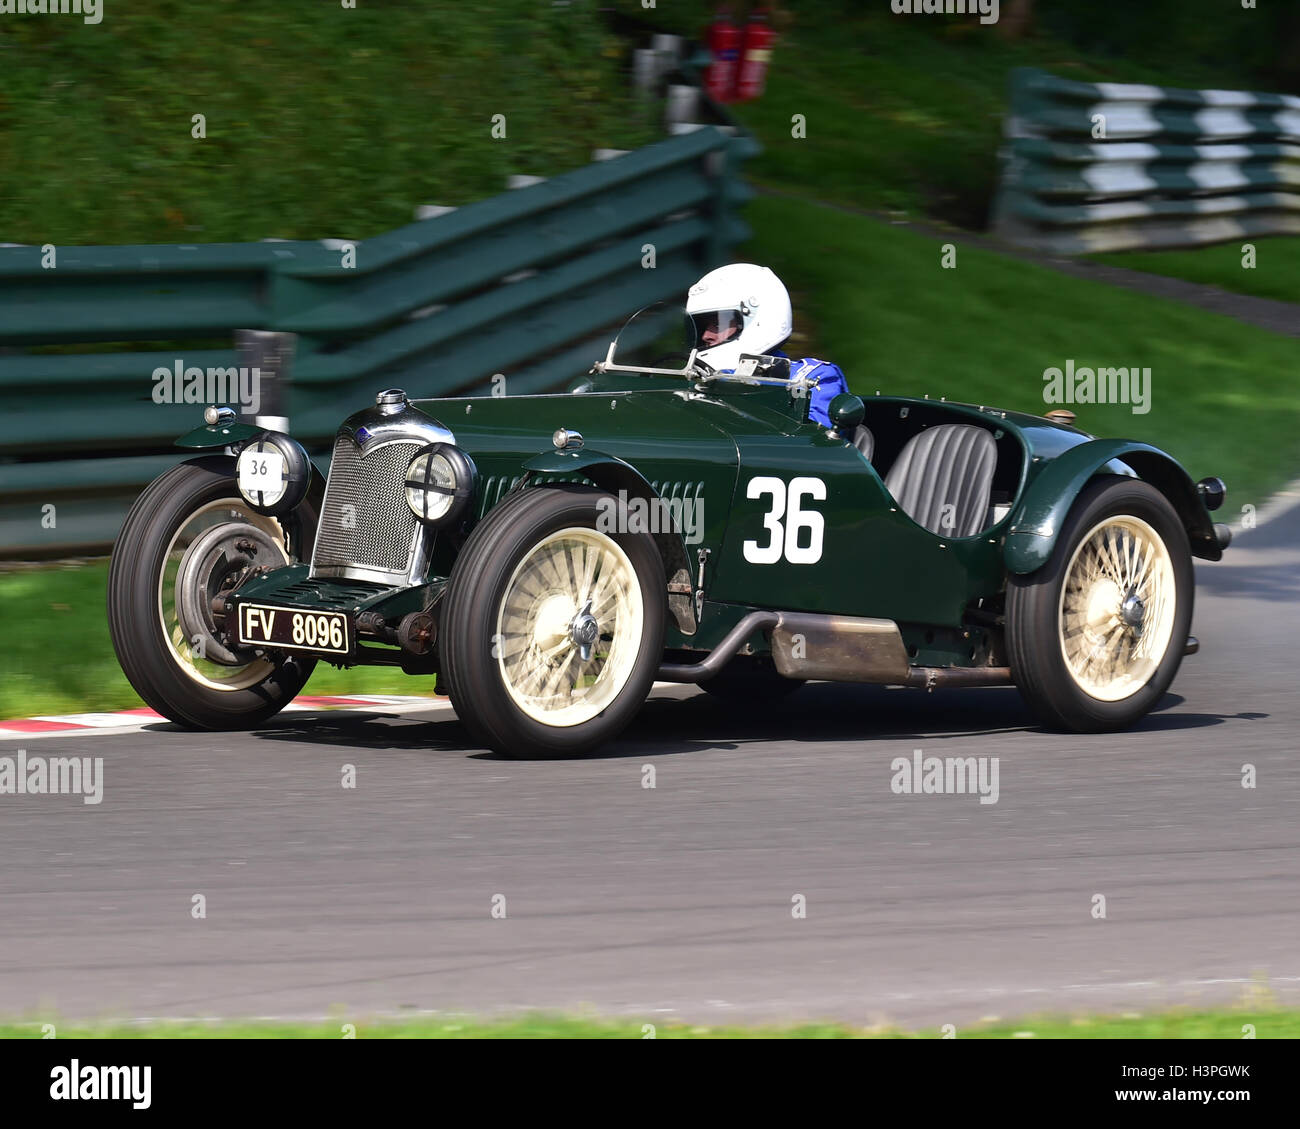 james whitmore riley 12 4 special pre war sports cars. Black Bedroom Furniture Sets. Home Design Ideas